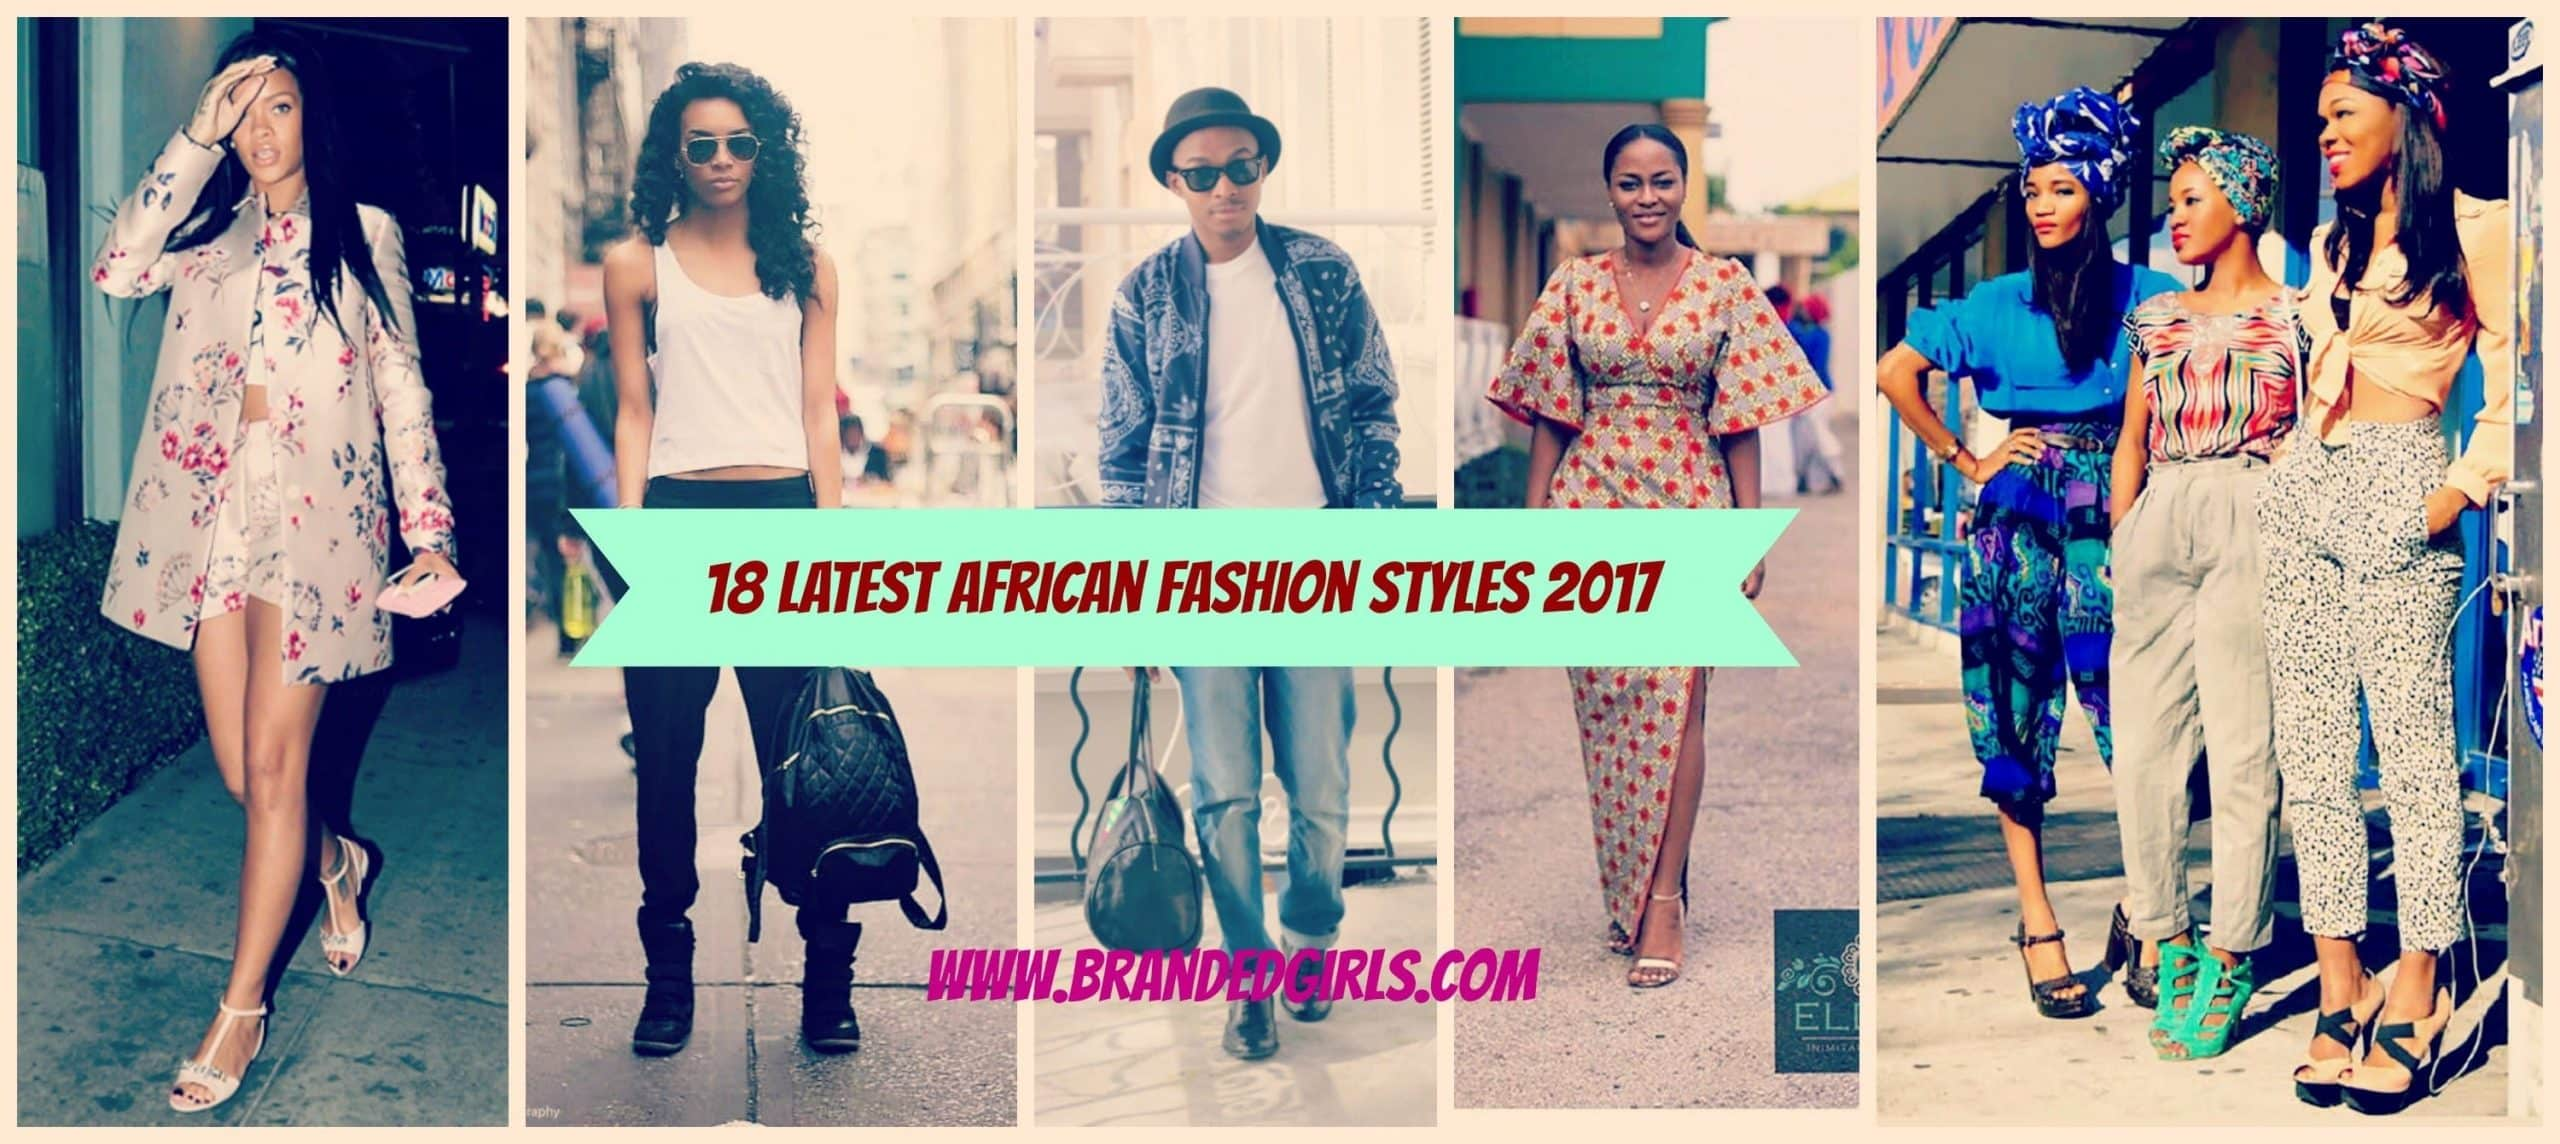 download Modern African Dresses-18 Latest African Fashion Styles 2017